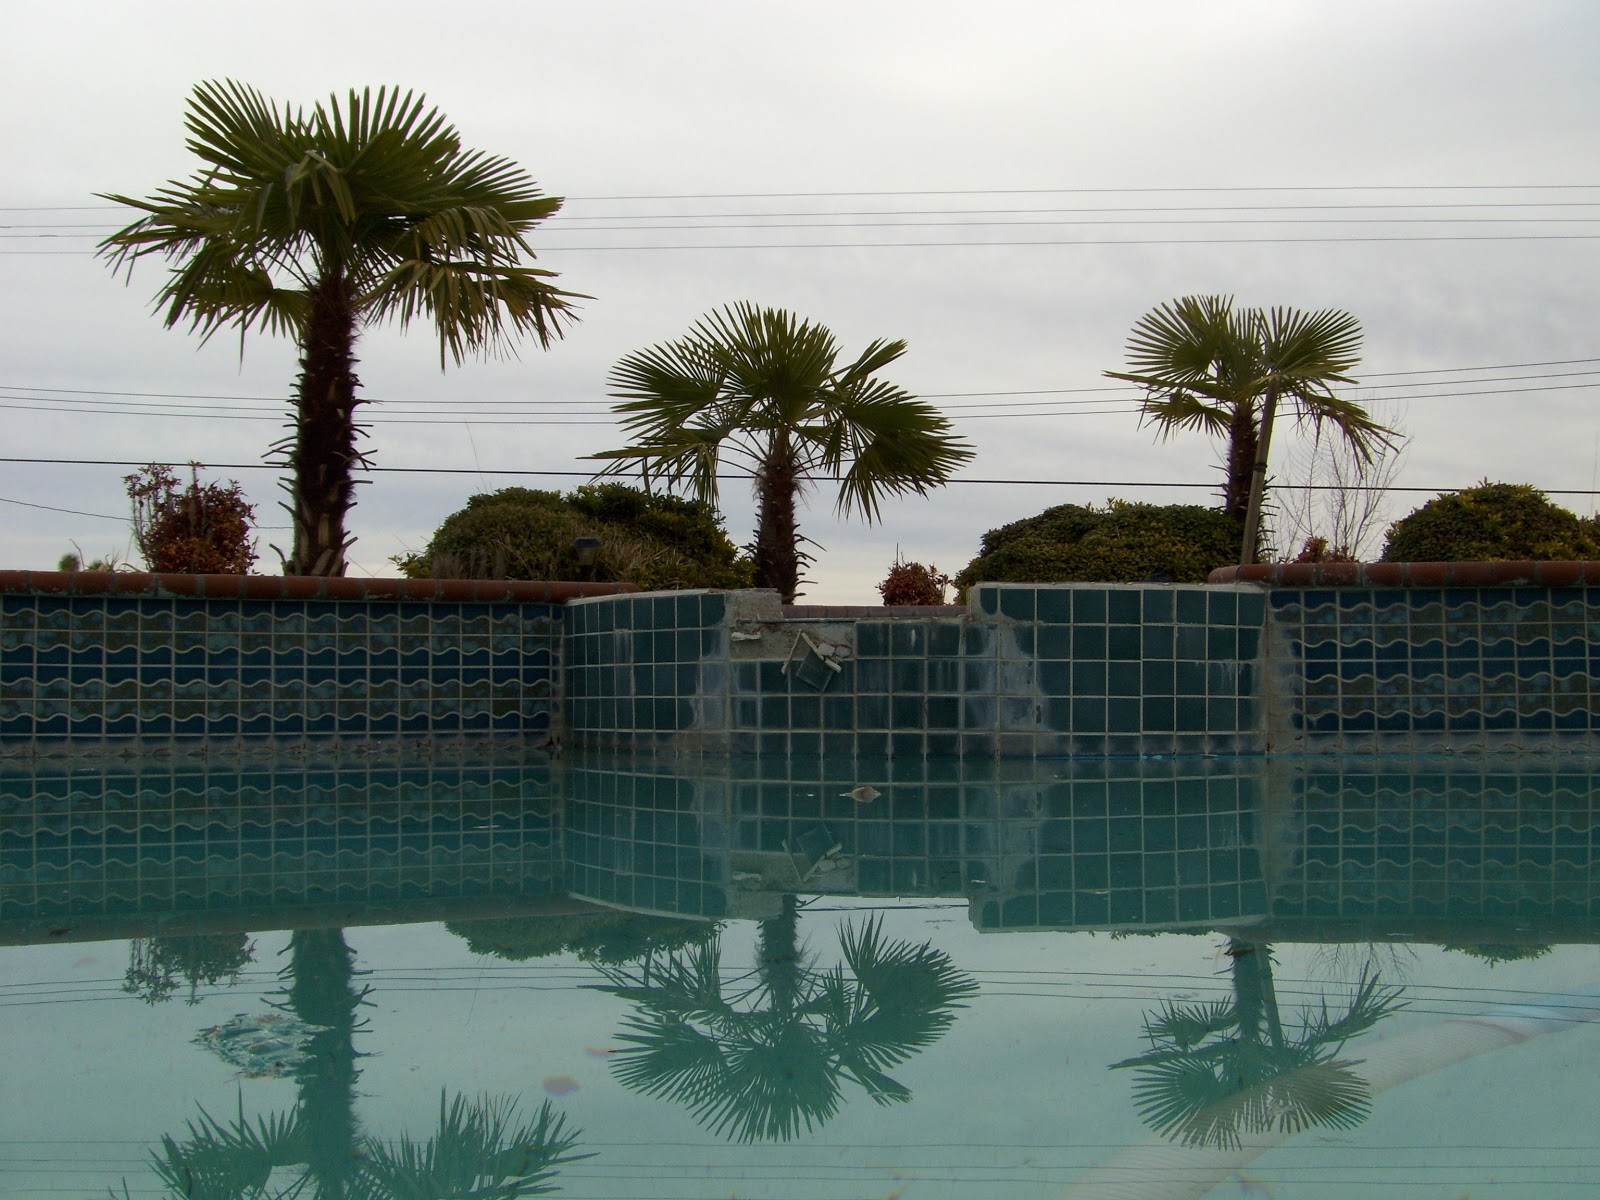 Pool tile cleaning pro 877 835 8763 orange county los angeles riverside palm springs 2013 for Swimming pool demolition los angeles